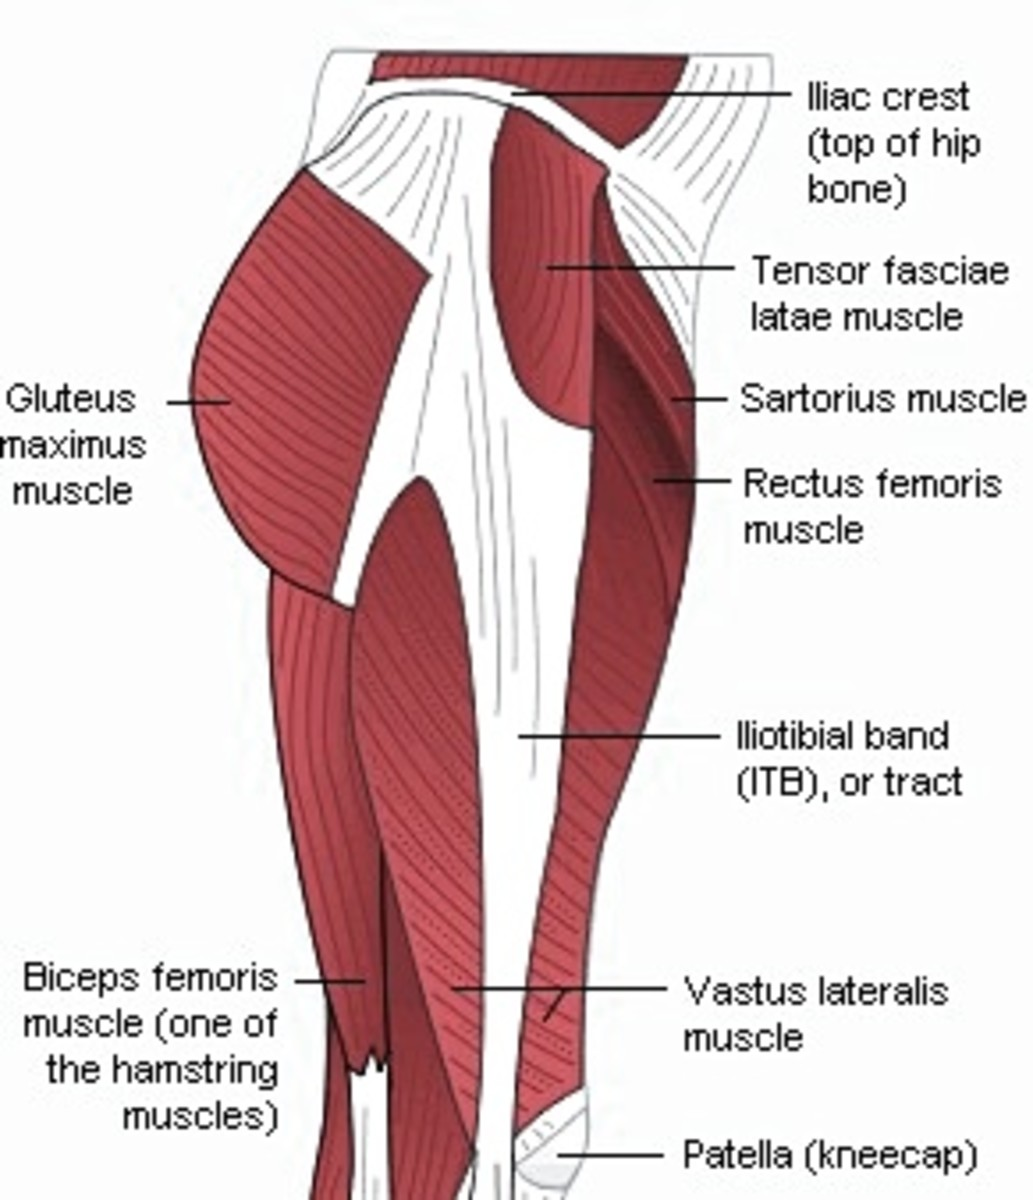 target tone buttocks with aquatic frog legs full exercise review  : gluteal muscle diagram - findchart.co